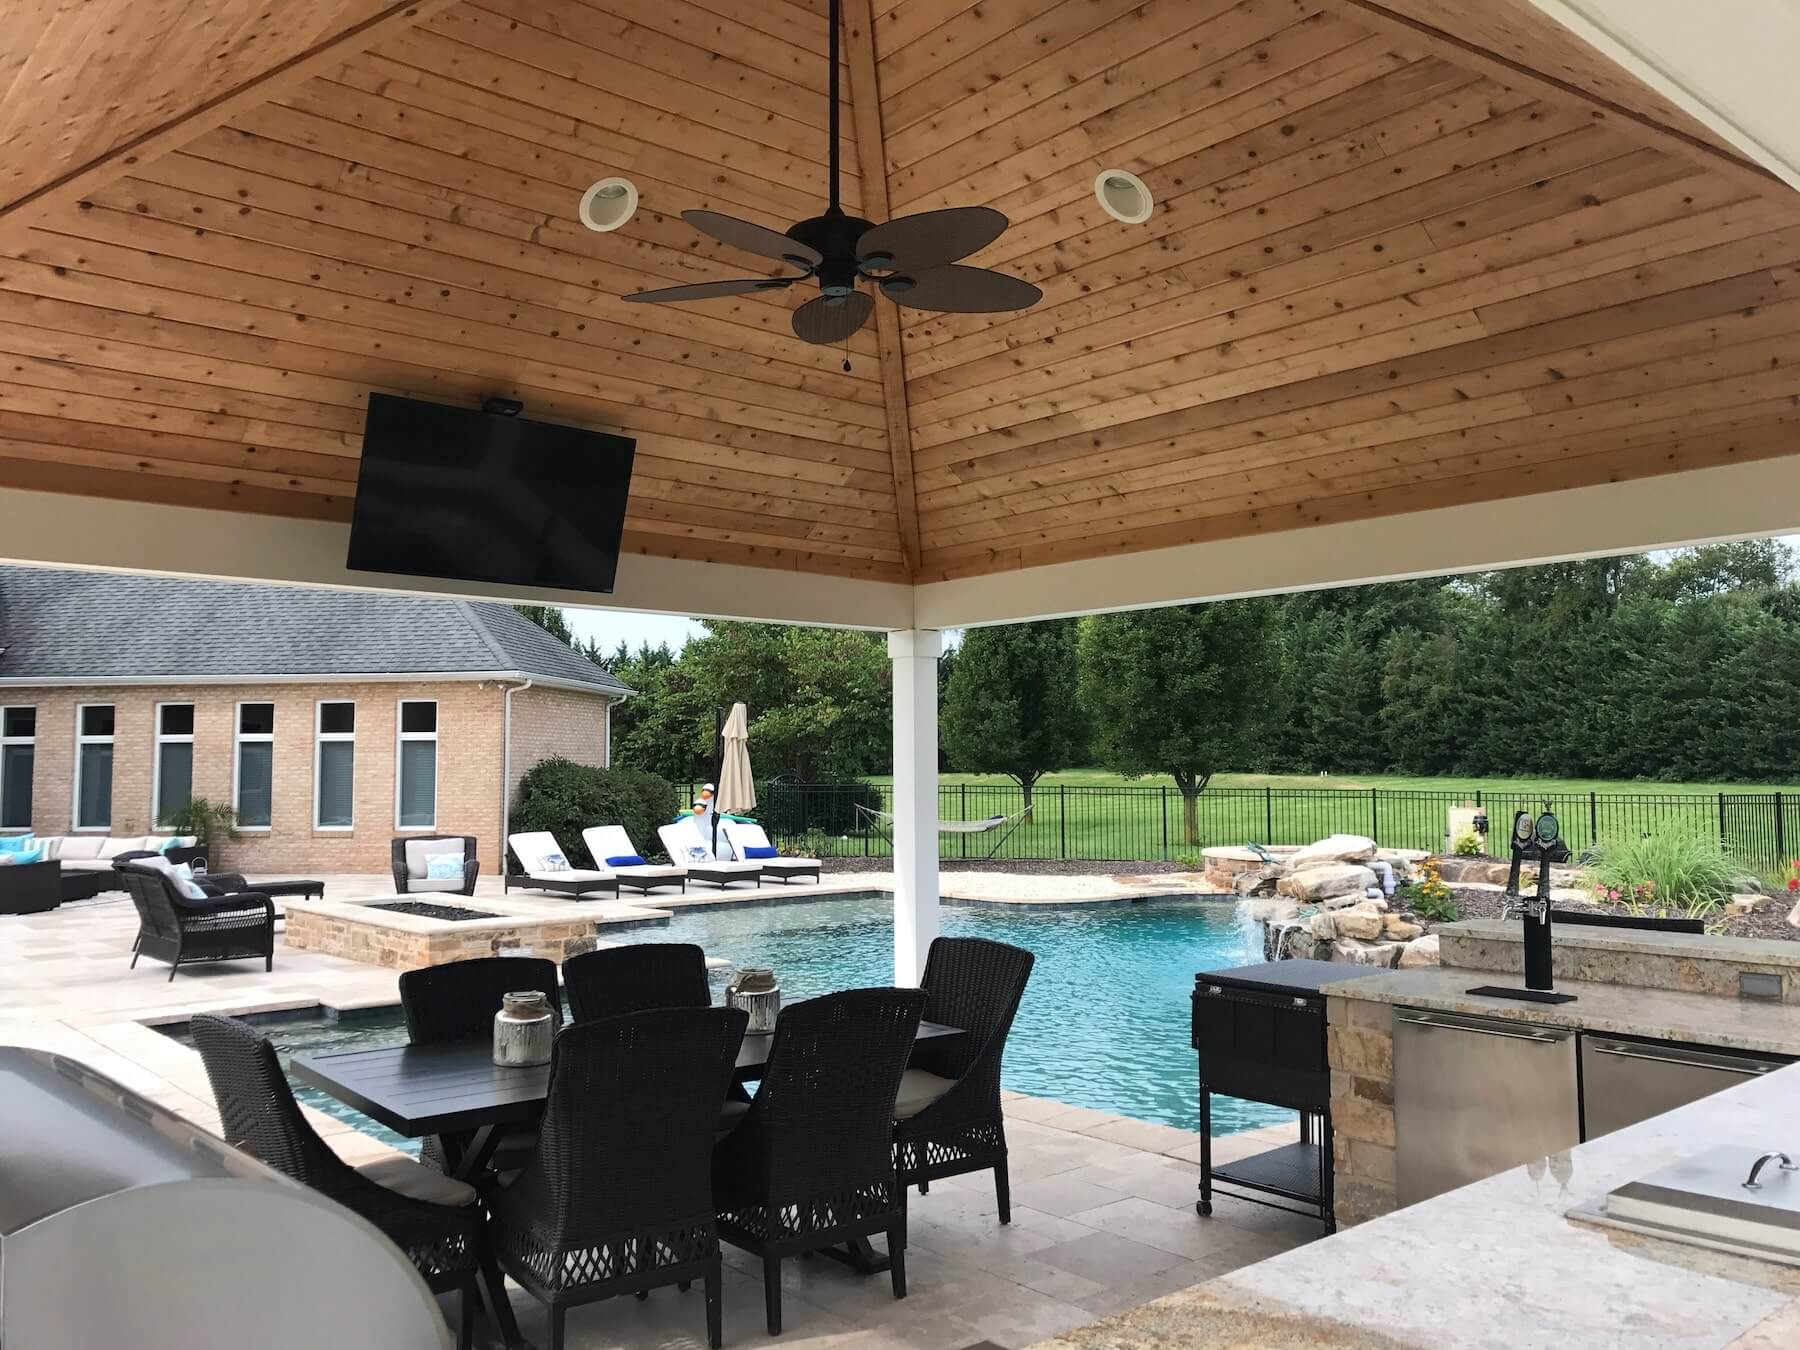 Poolside Pavilion With TV And Outdoor Dining